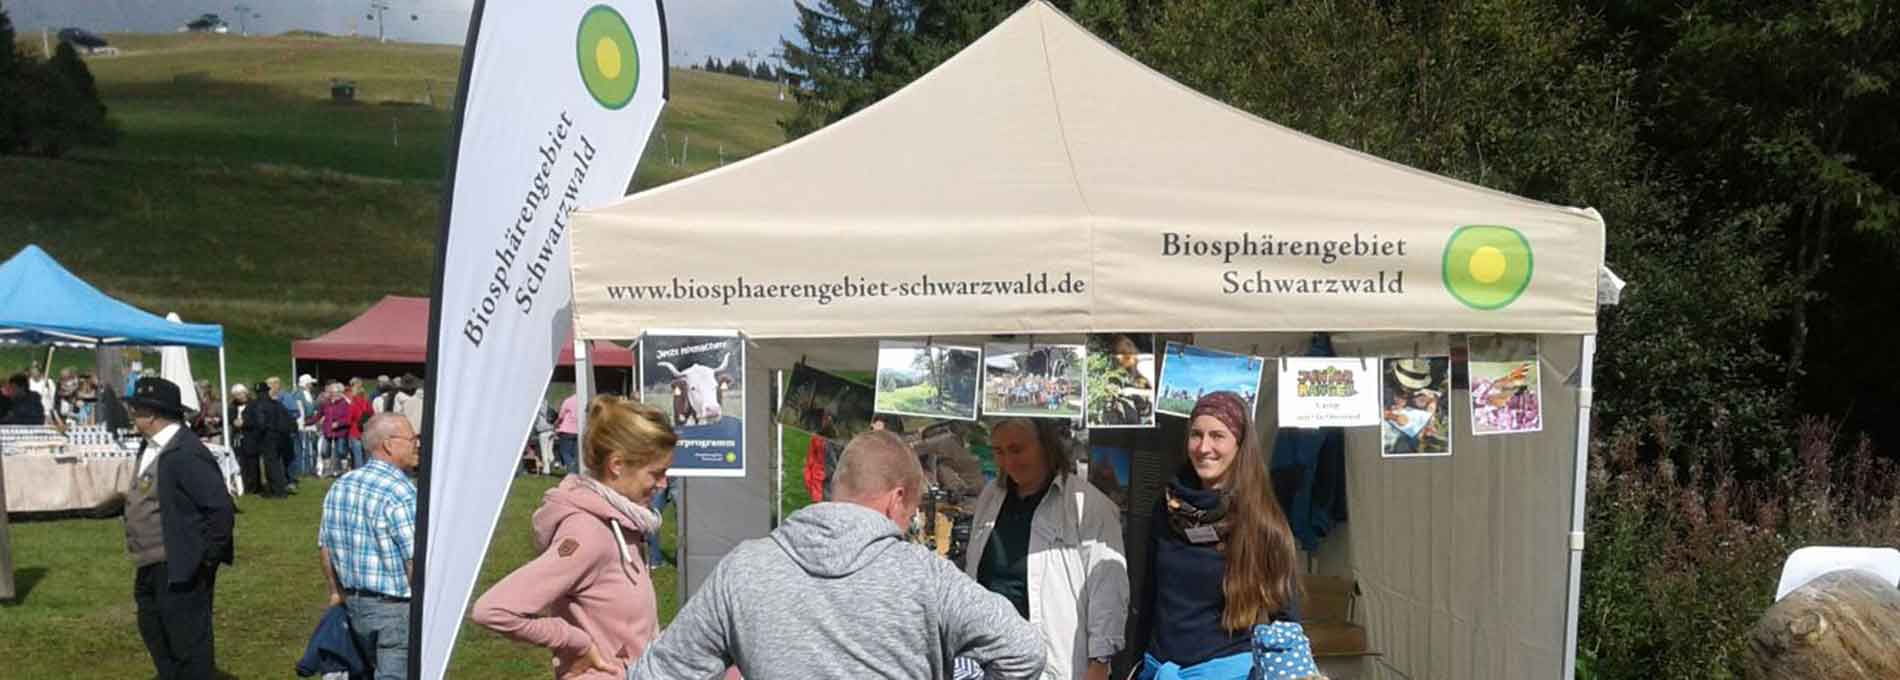 Mobile Infopoint of the Biosphärengebiet Schwarzwald on informational event.